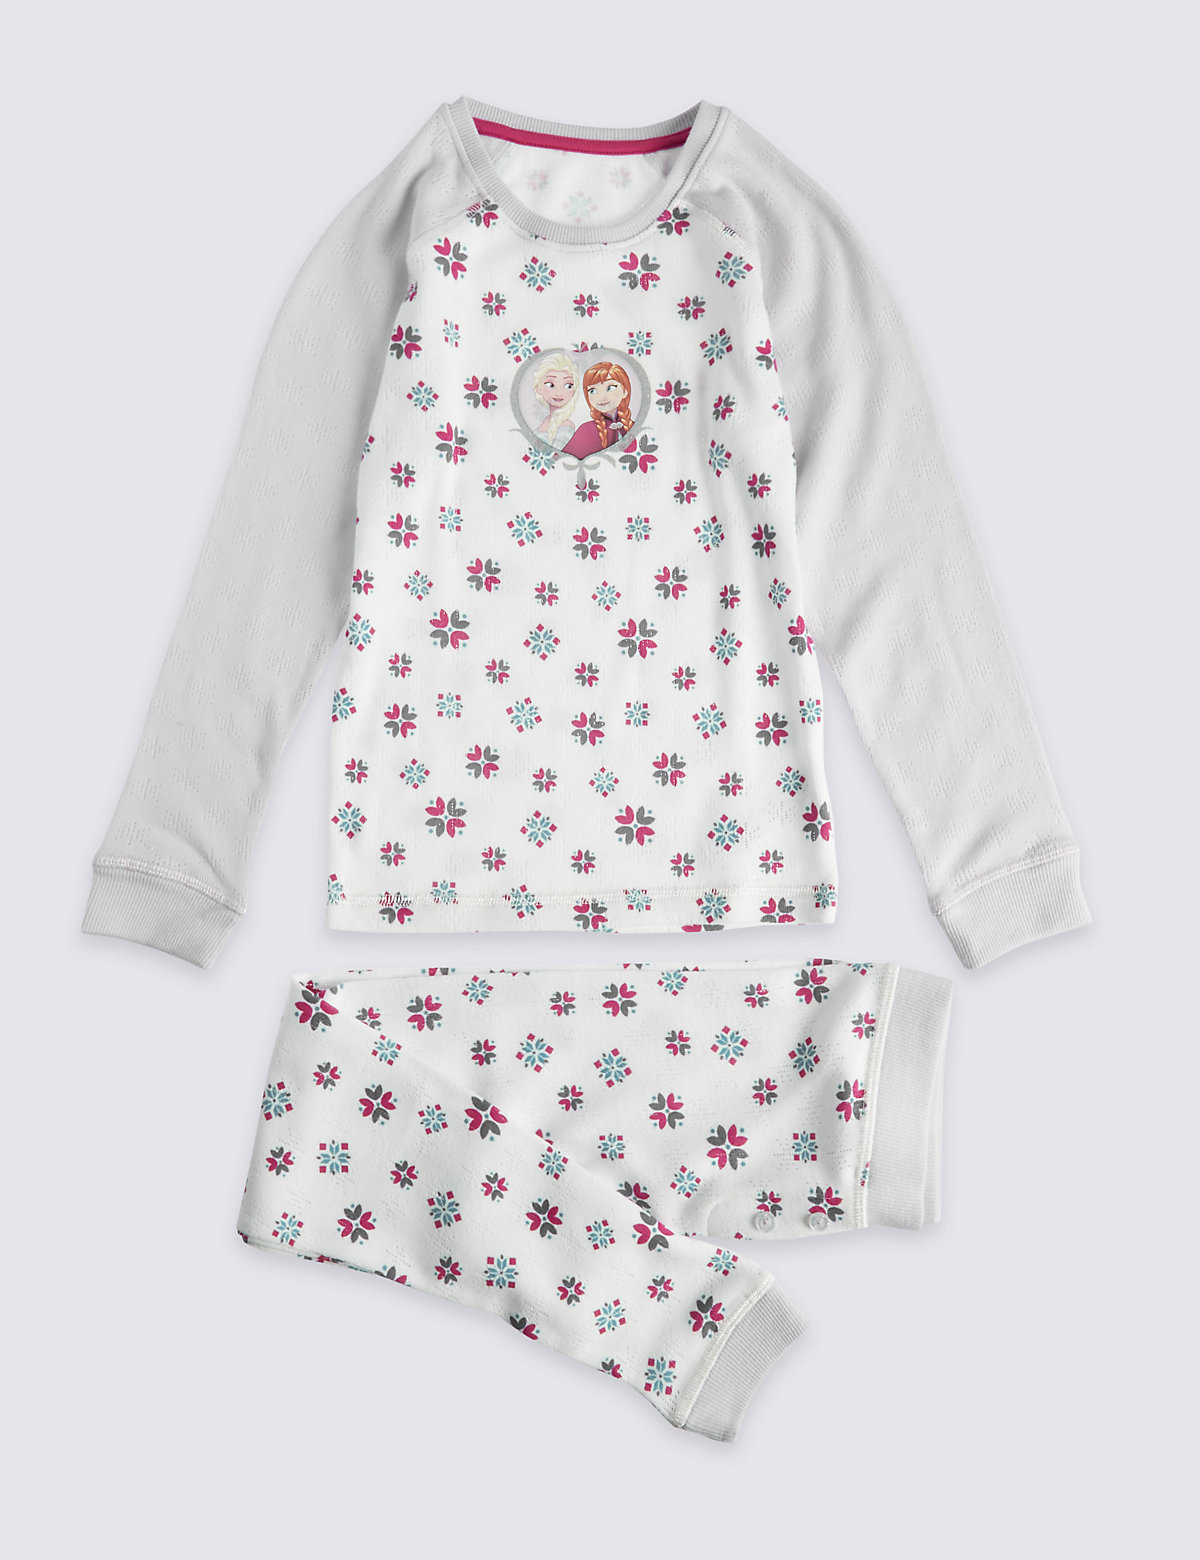 Disney Frozen Long Sleeve Thermal Set (18 Months  7 Years)